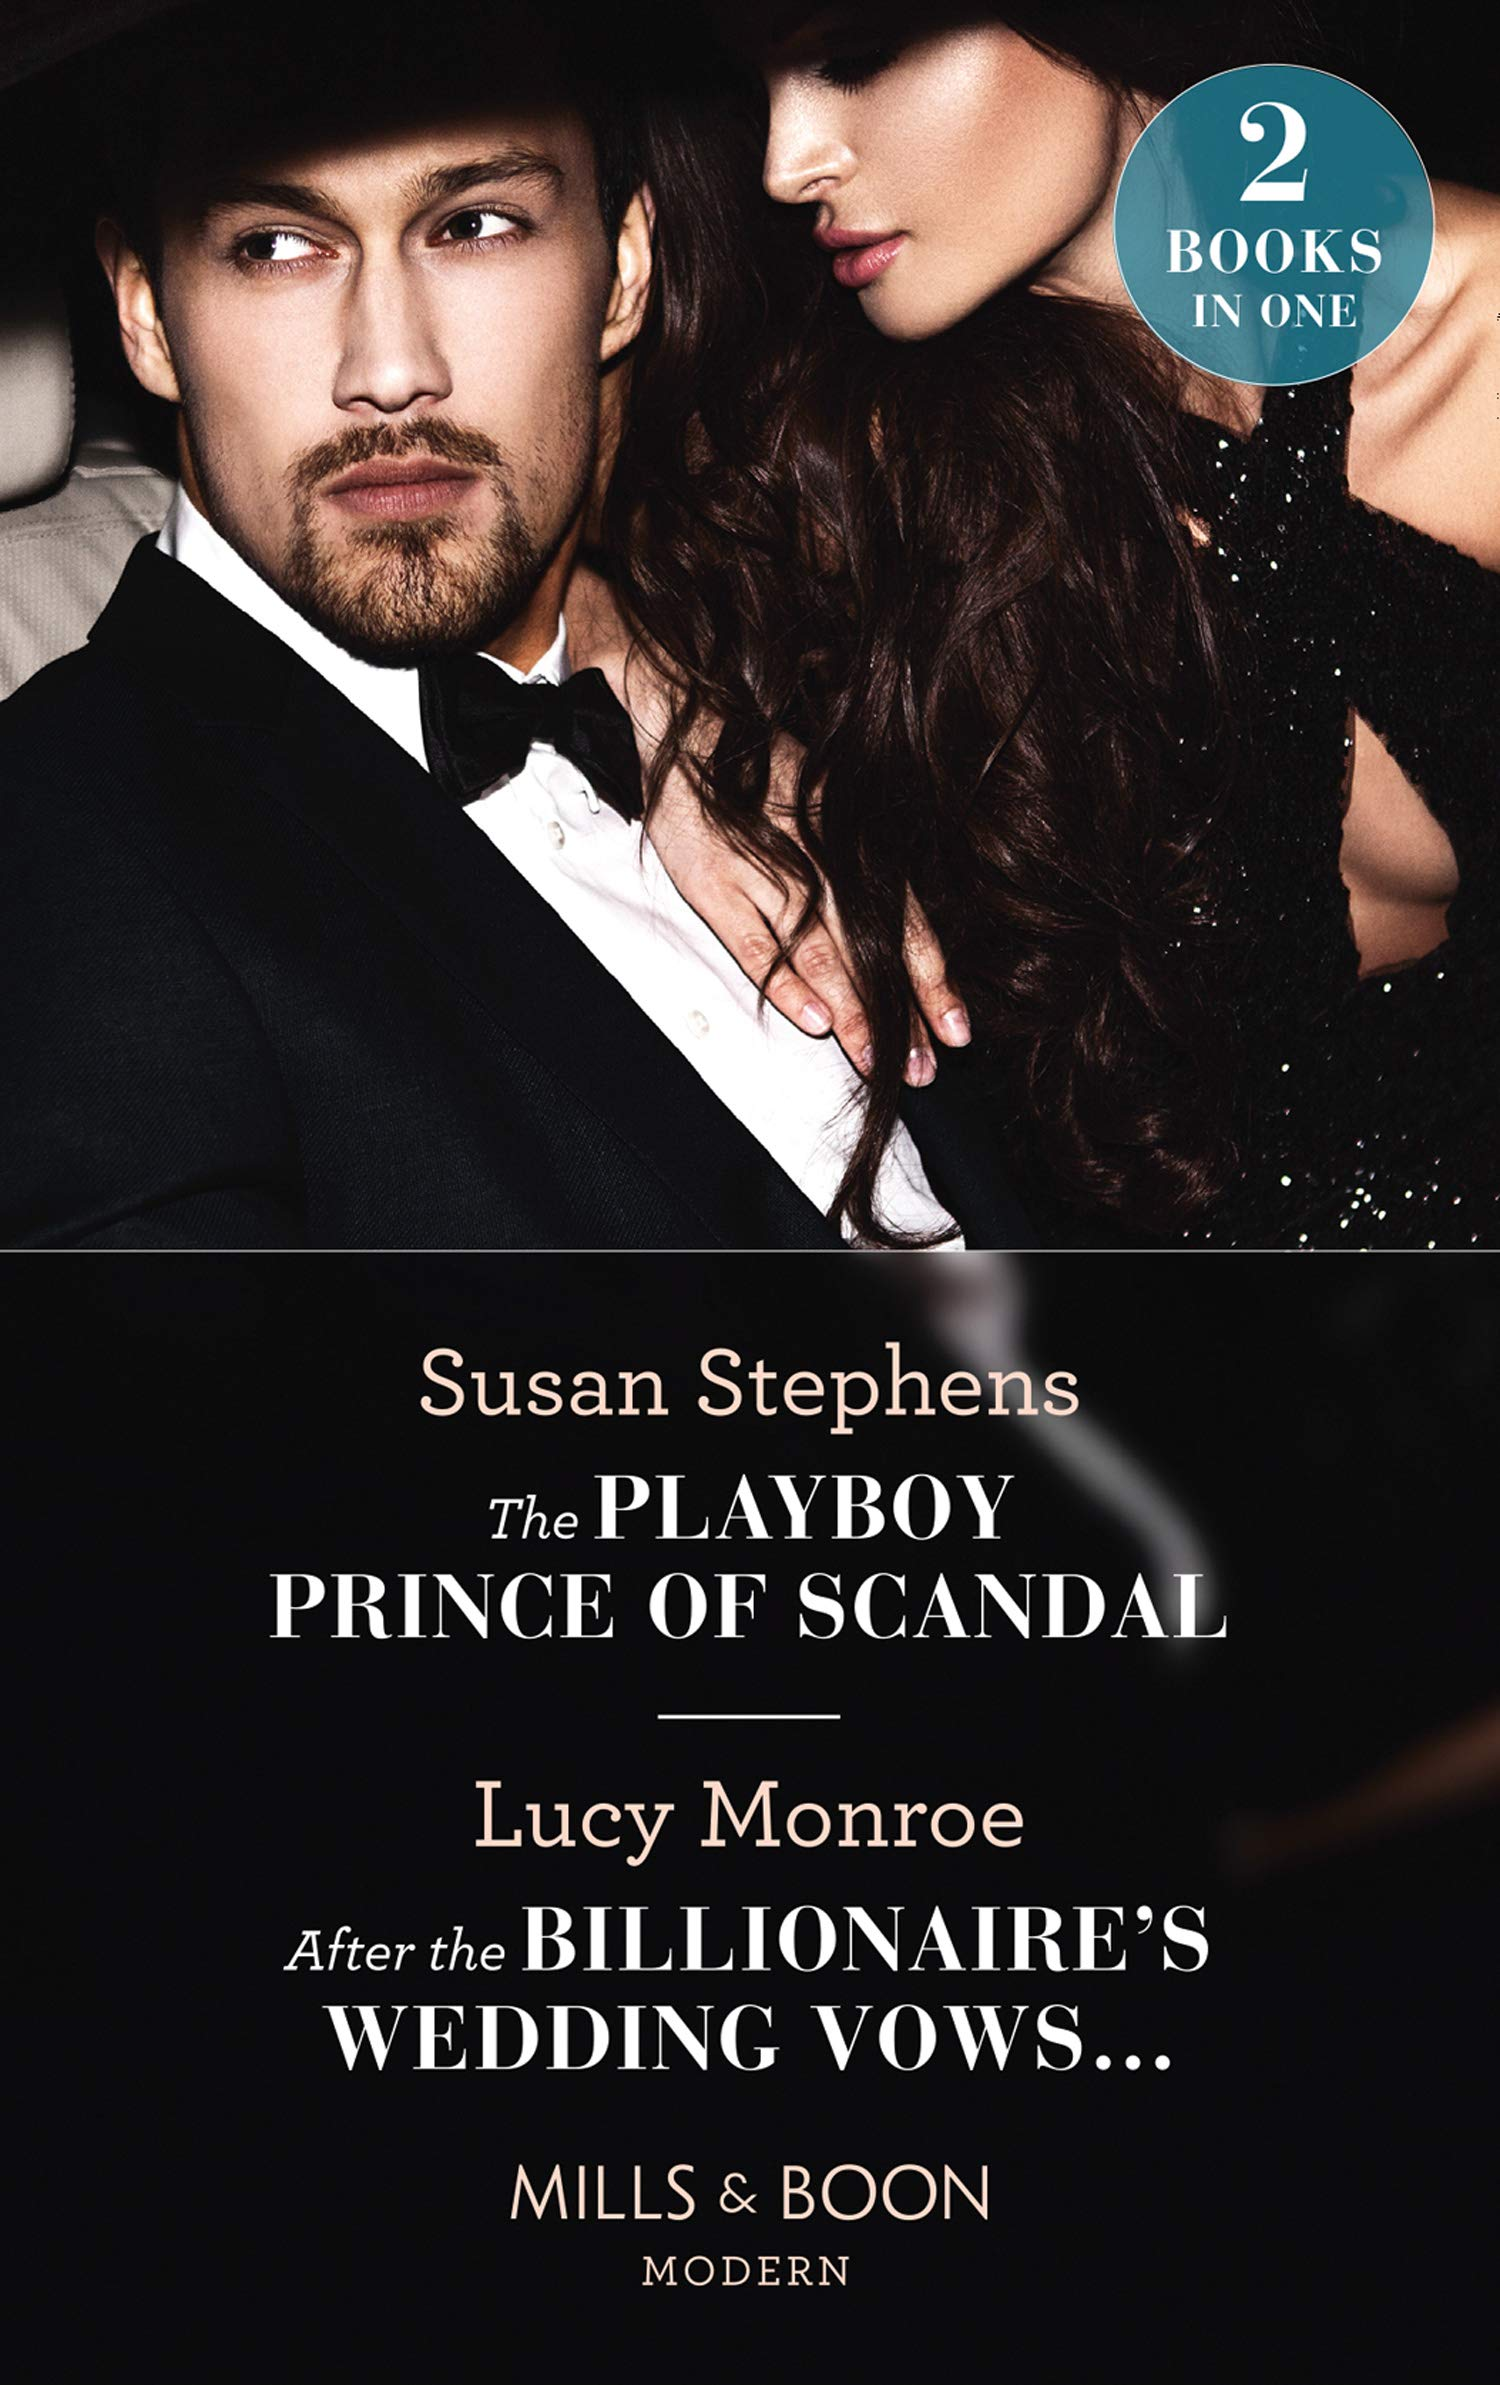 The Playboy Prince Of Scandal / After The Billionaire's Wedding Vows…: The Playboy Prince of Scandal (The Acostas!) / After the Billionaire's Wedding Vows… (The Acostas!)